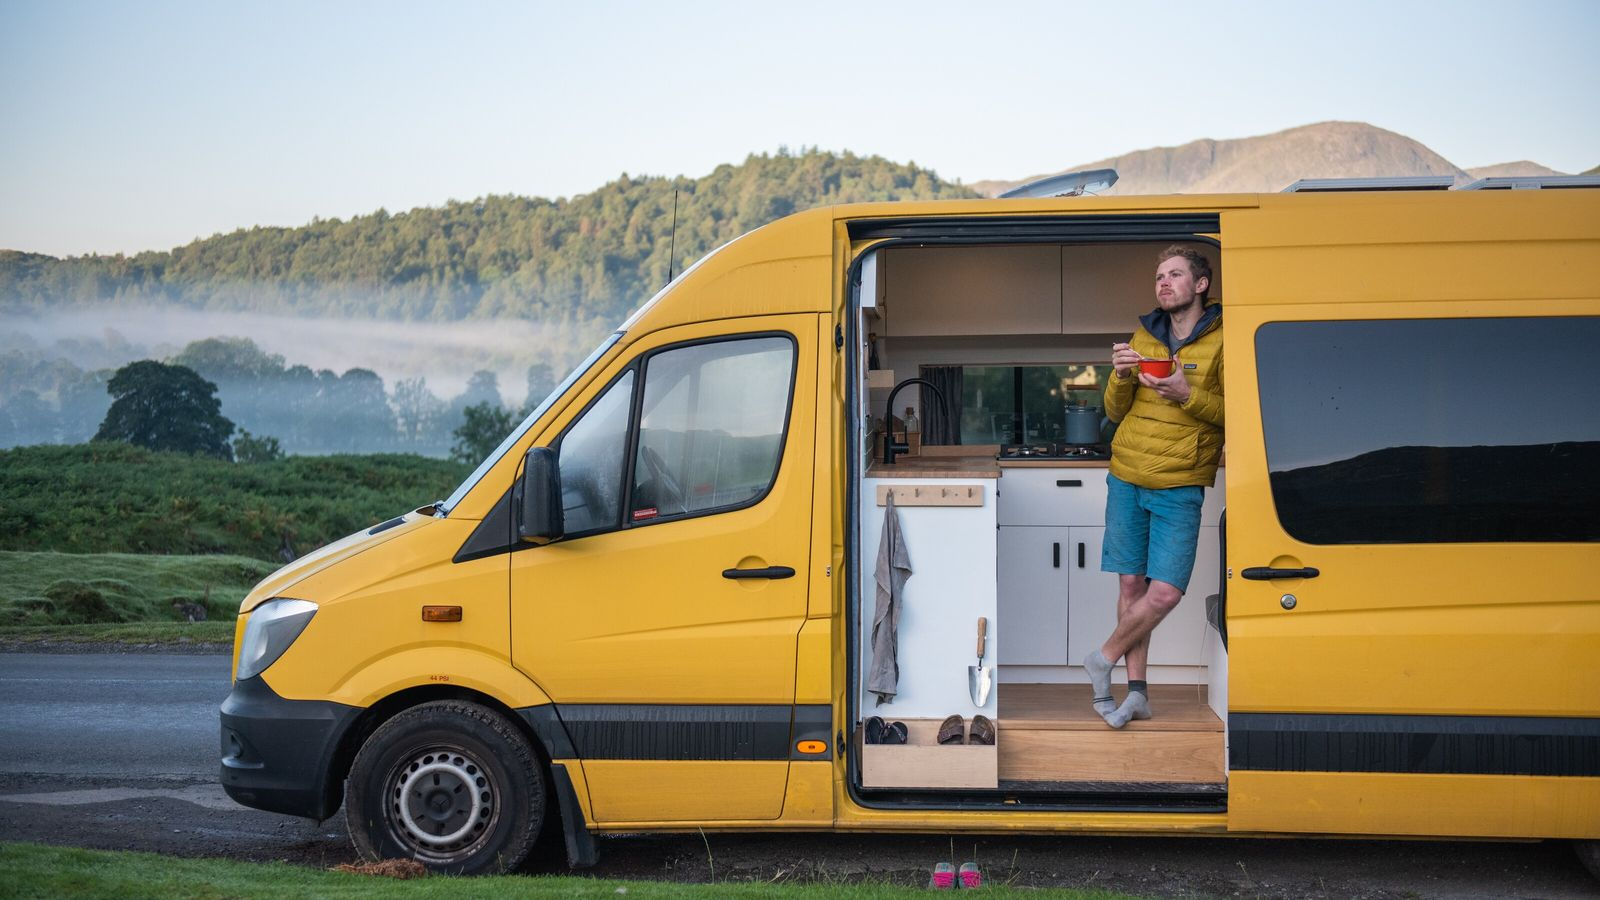 The National Caravan Council reports sales of motorhomes tripling since 2000, whileAuto Trader's 2020 survey found ...